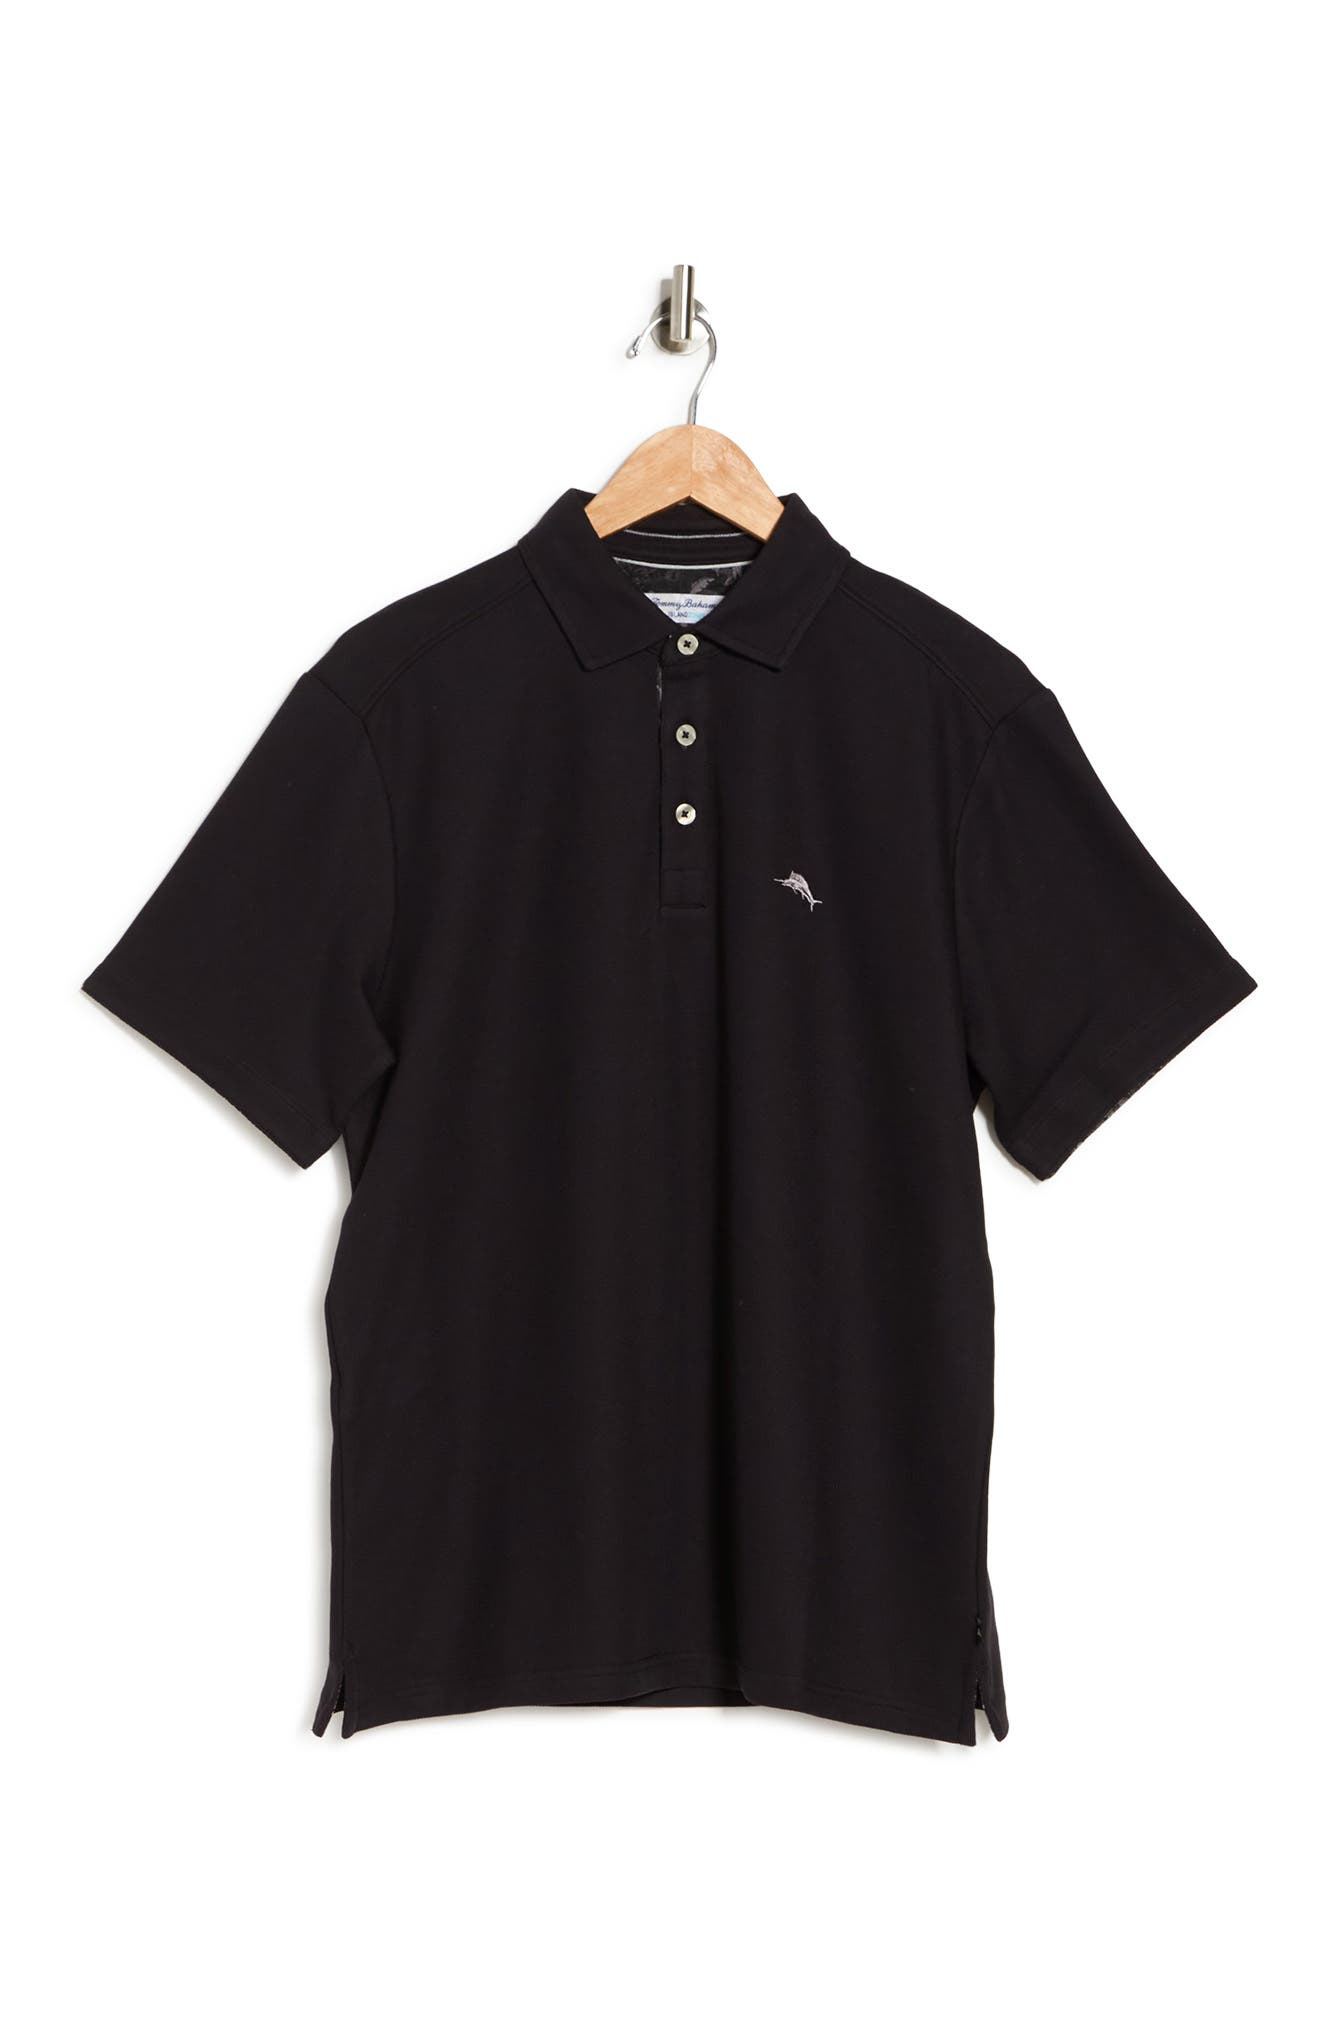 Tommy Bahama Men's Big & Tall Limited Edition 5 O'clock Classic-fit Islandzone Moisture-wicking Pique Polo Shirt In Black